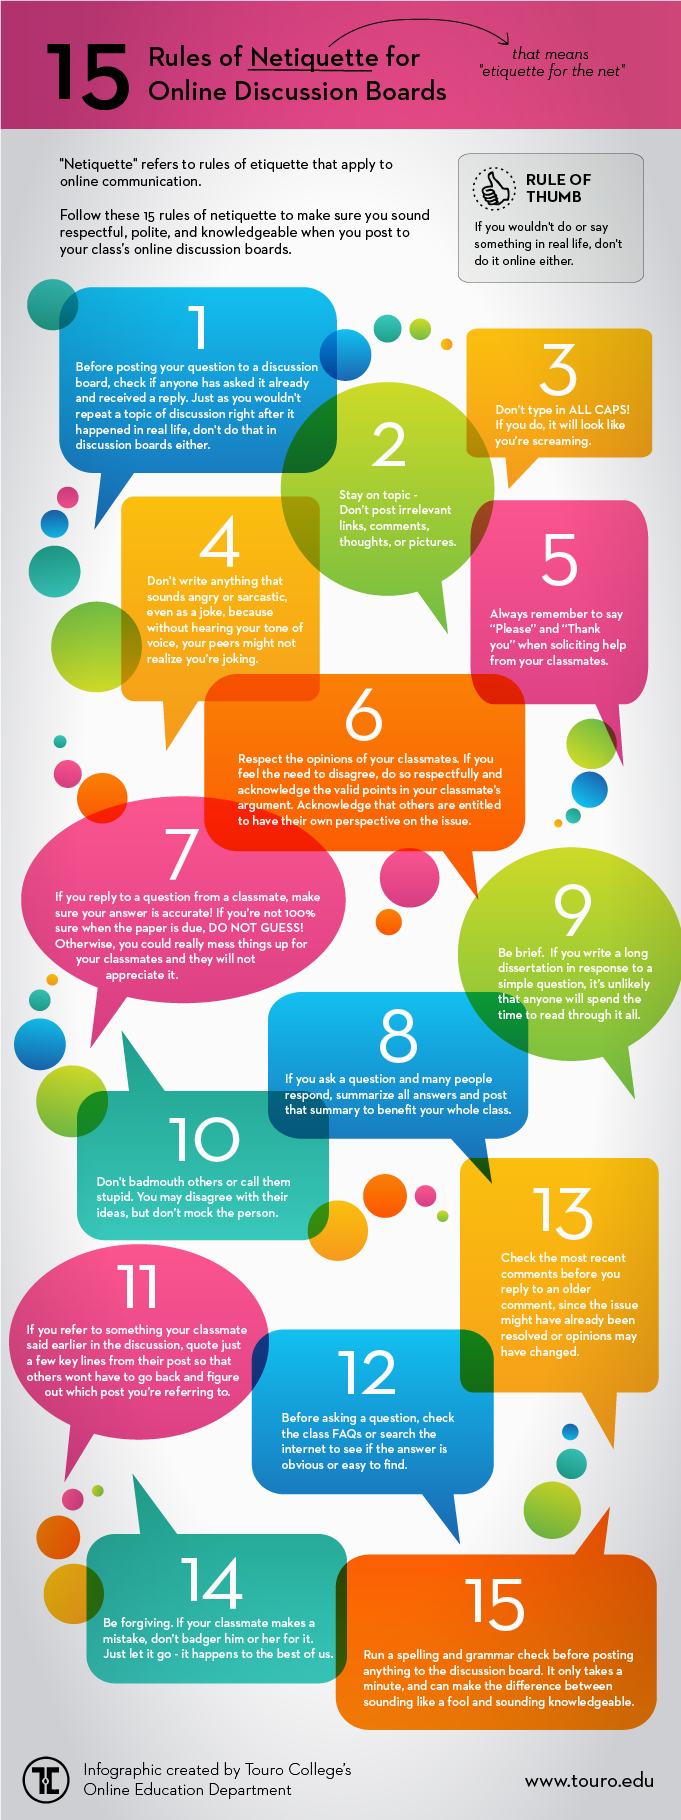 Netiquette Online Discussion Boards infographic